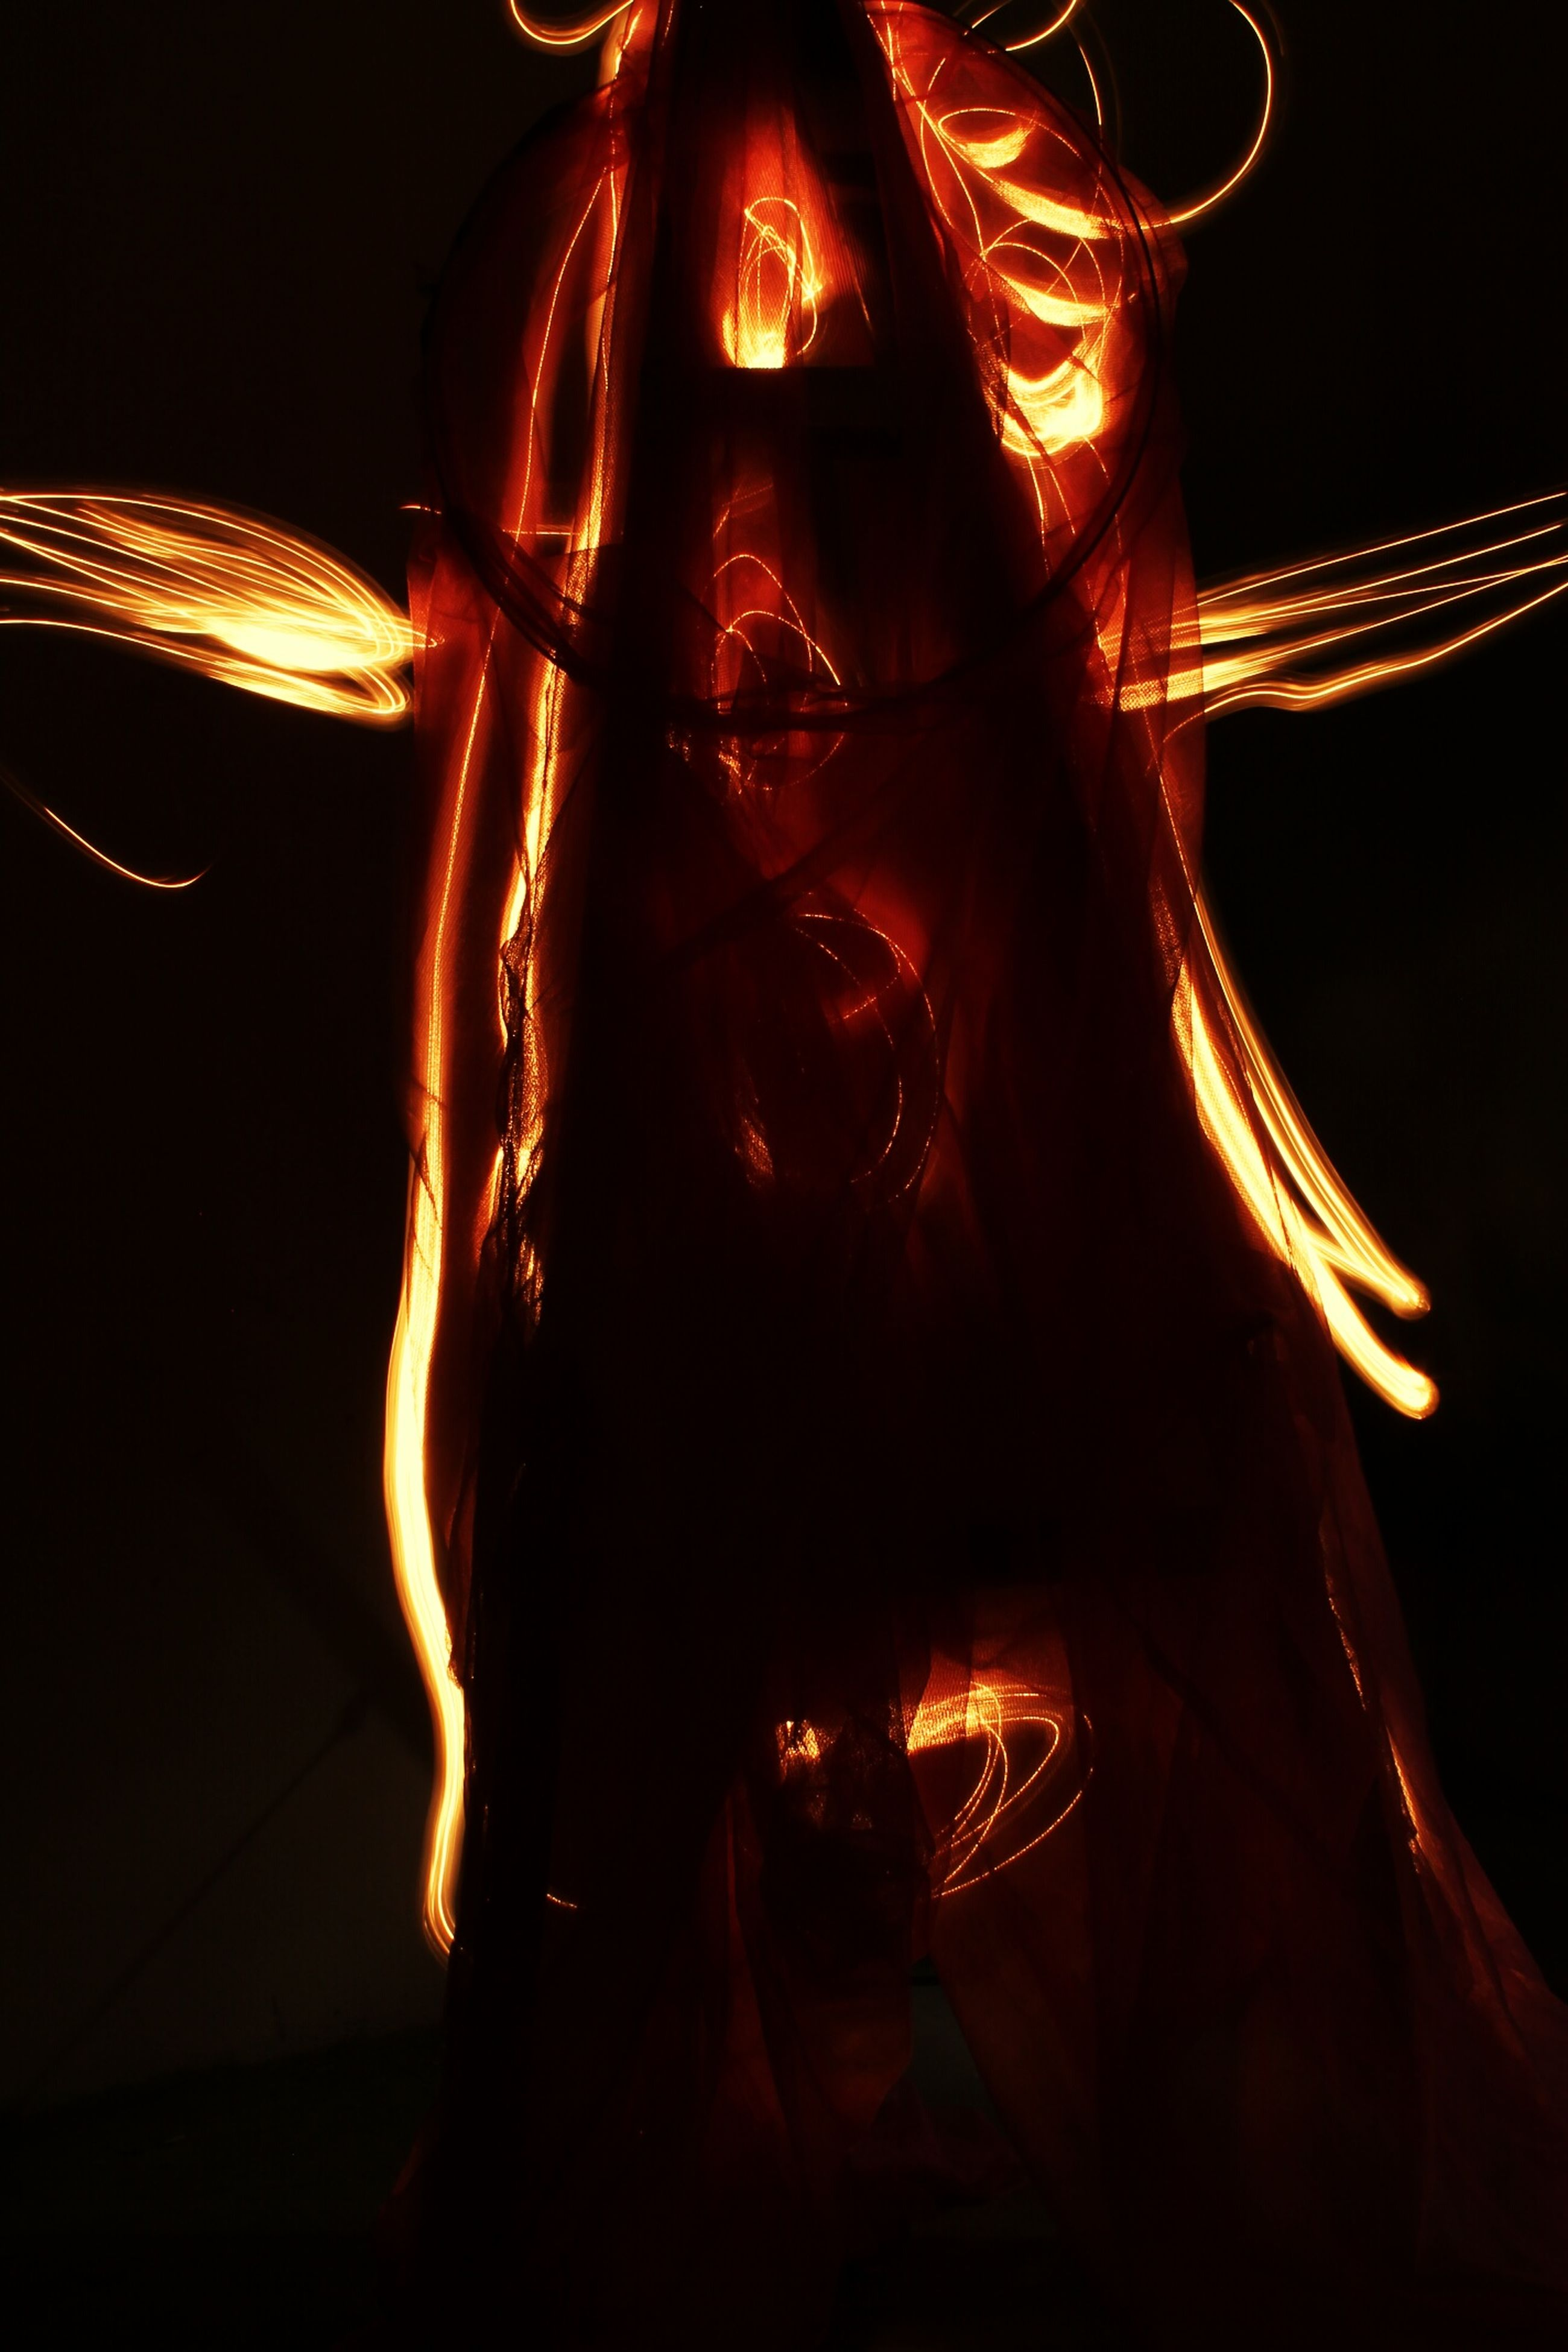 night, illuminated, dark, glowing, fire - natural phenomenon, low angle view, light - natural phenomenon, burning, arts culture and entertainment, lighting equipment, close-up, flame, indoors, no people, long exposure, tradition, lit, celebration, black background